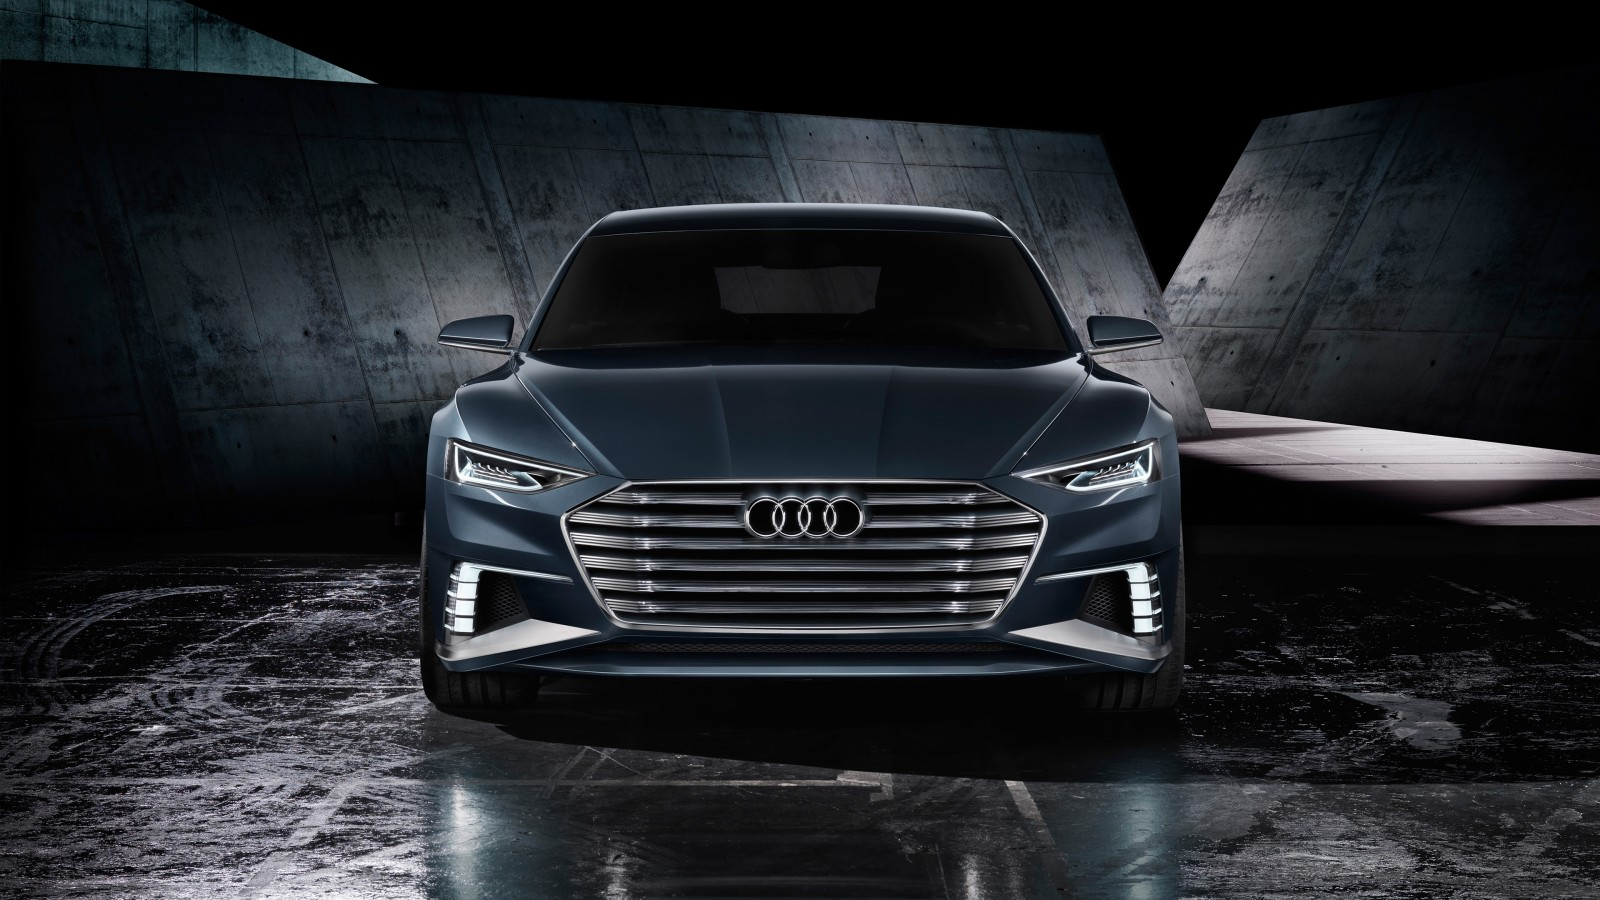 2018 Audi A8 4K Wallpapers HD Wallpapers ID 19646